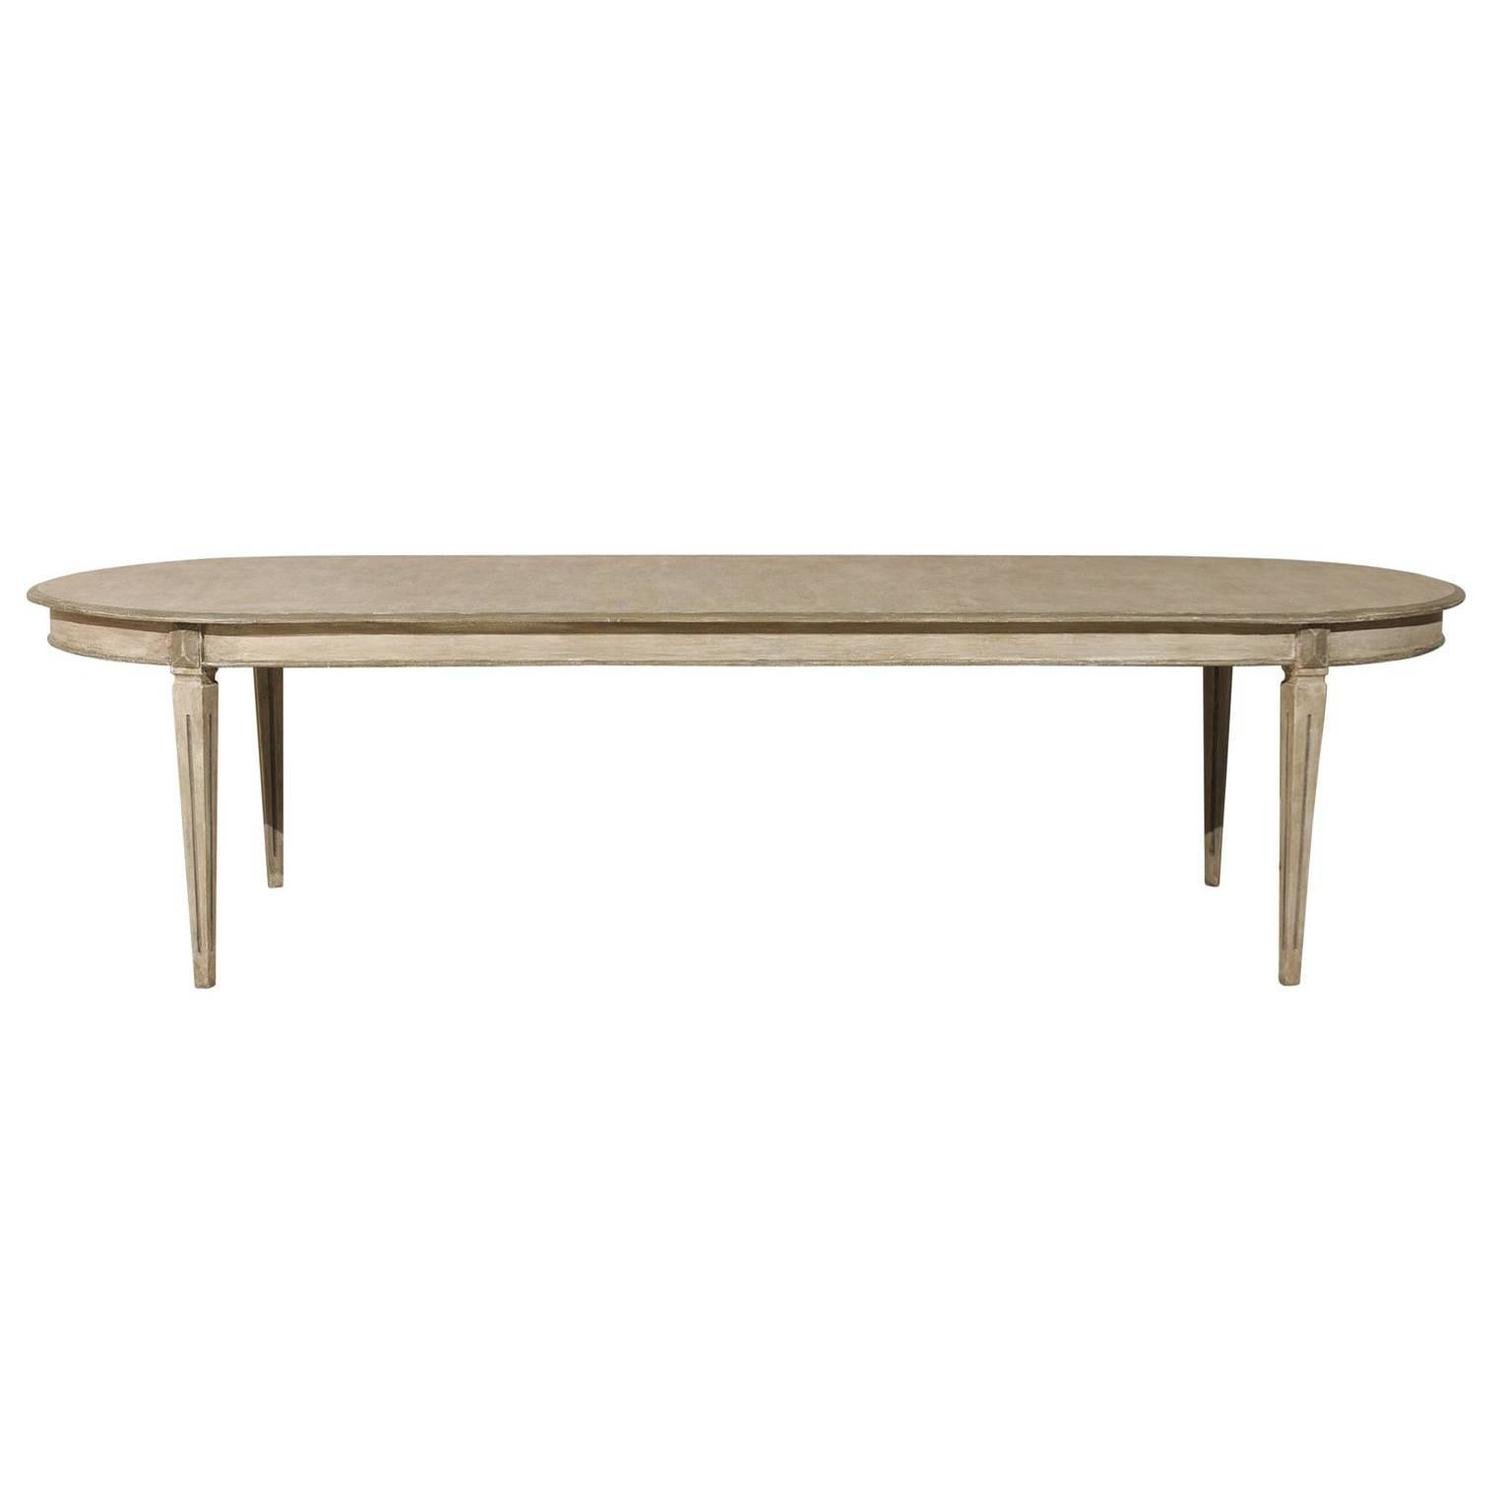 Swedish gustavian style painted wood oval dining table at for Painted dining table